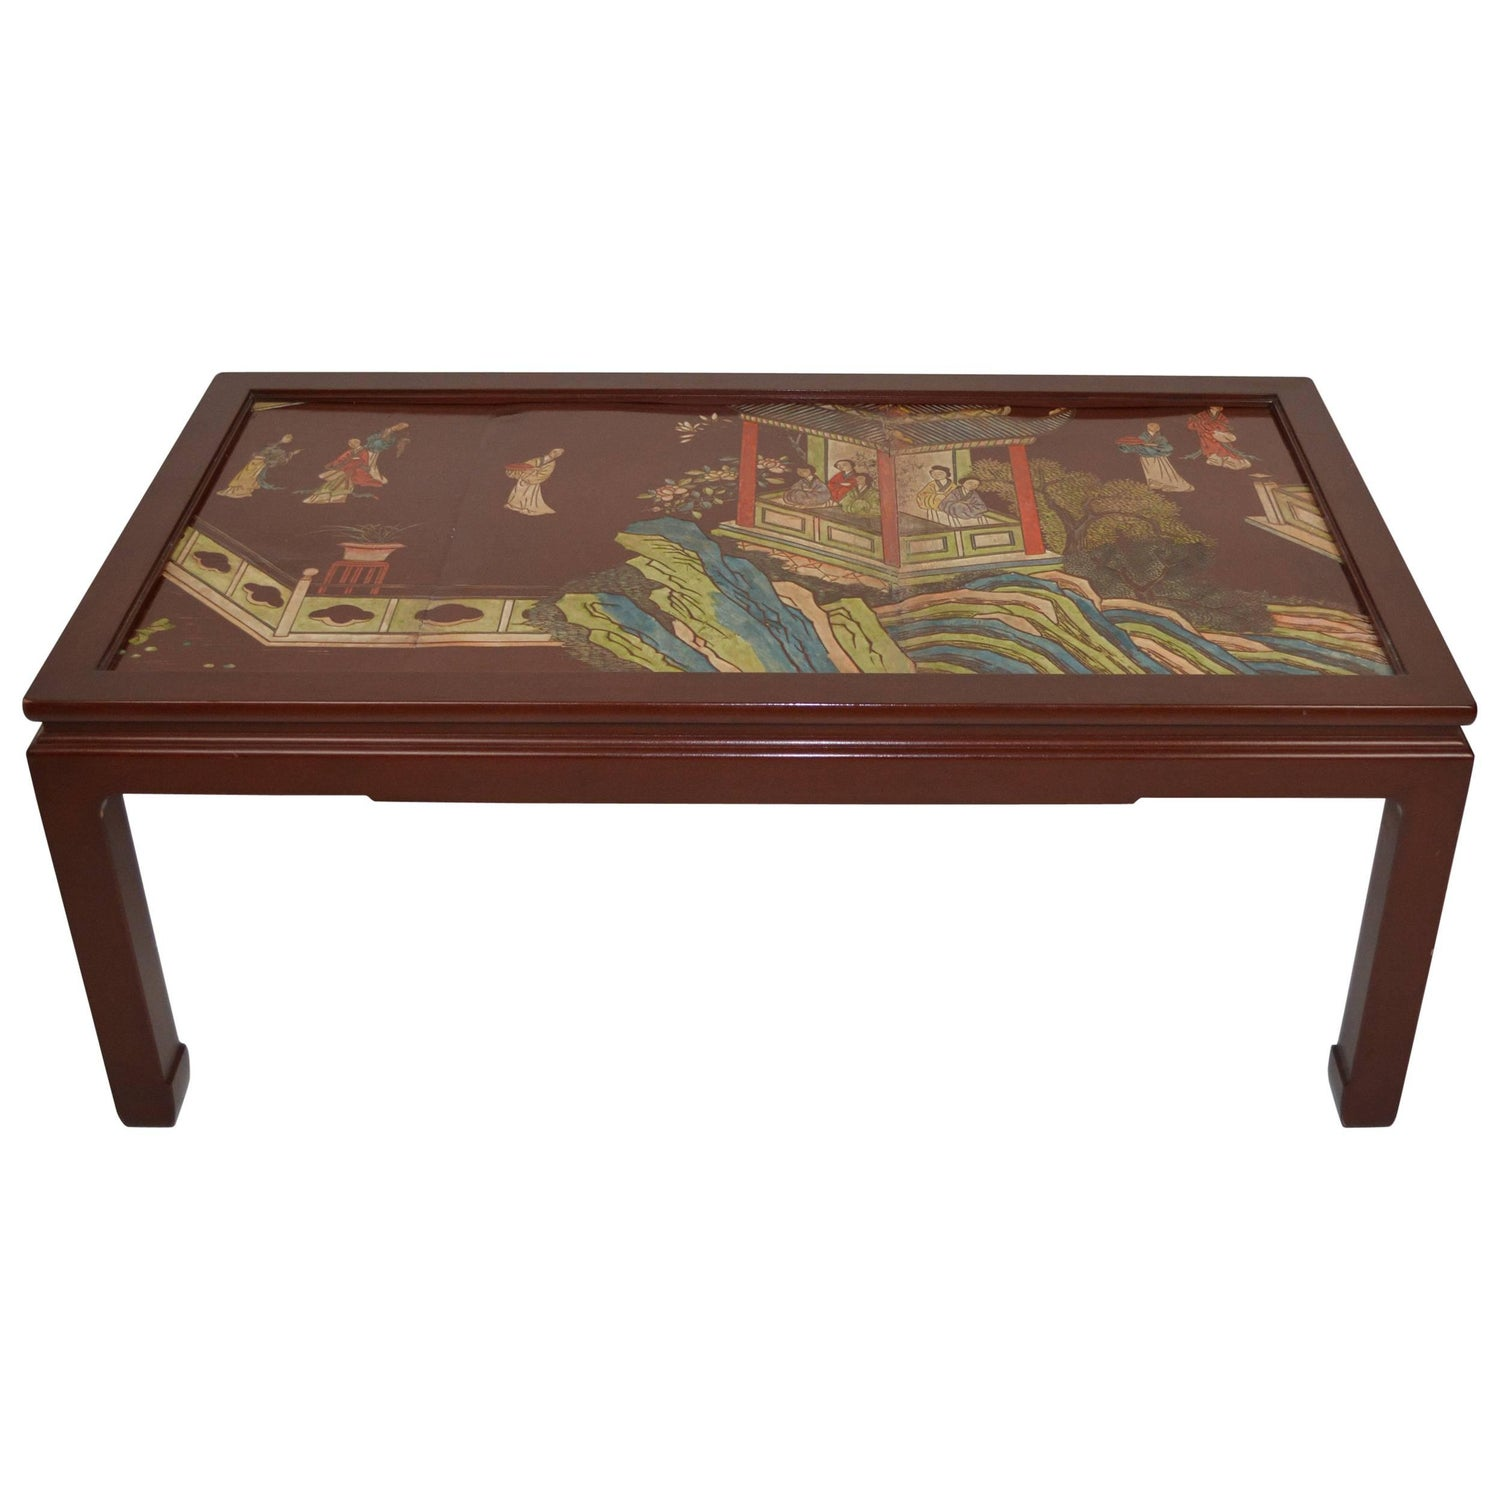 Chinese Coromandel Panel Coffee Table For Sale at 1stdibs